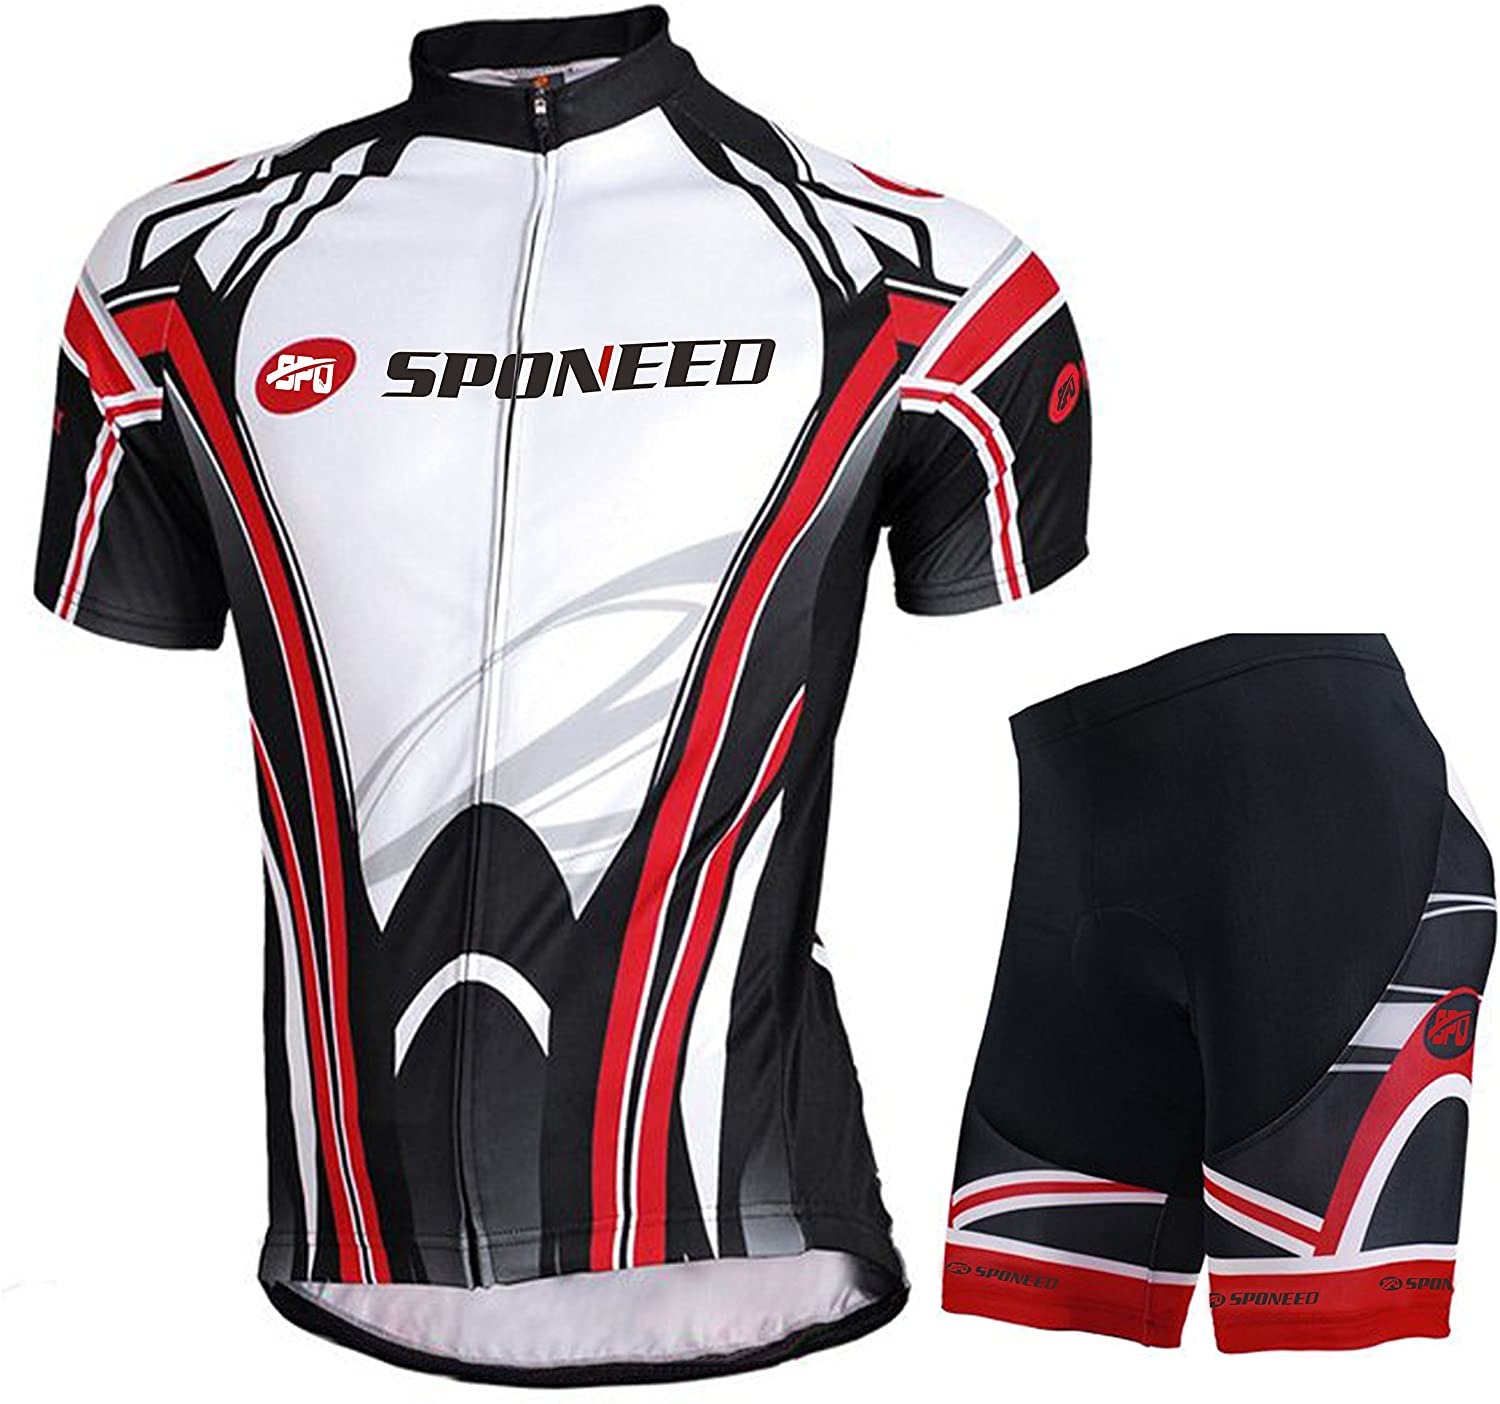 sponeed Cycling Jersey Short Sleeve Men MTB Bike Clothing Road Bicycle Shorts Padded